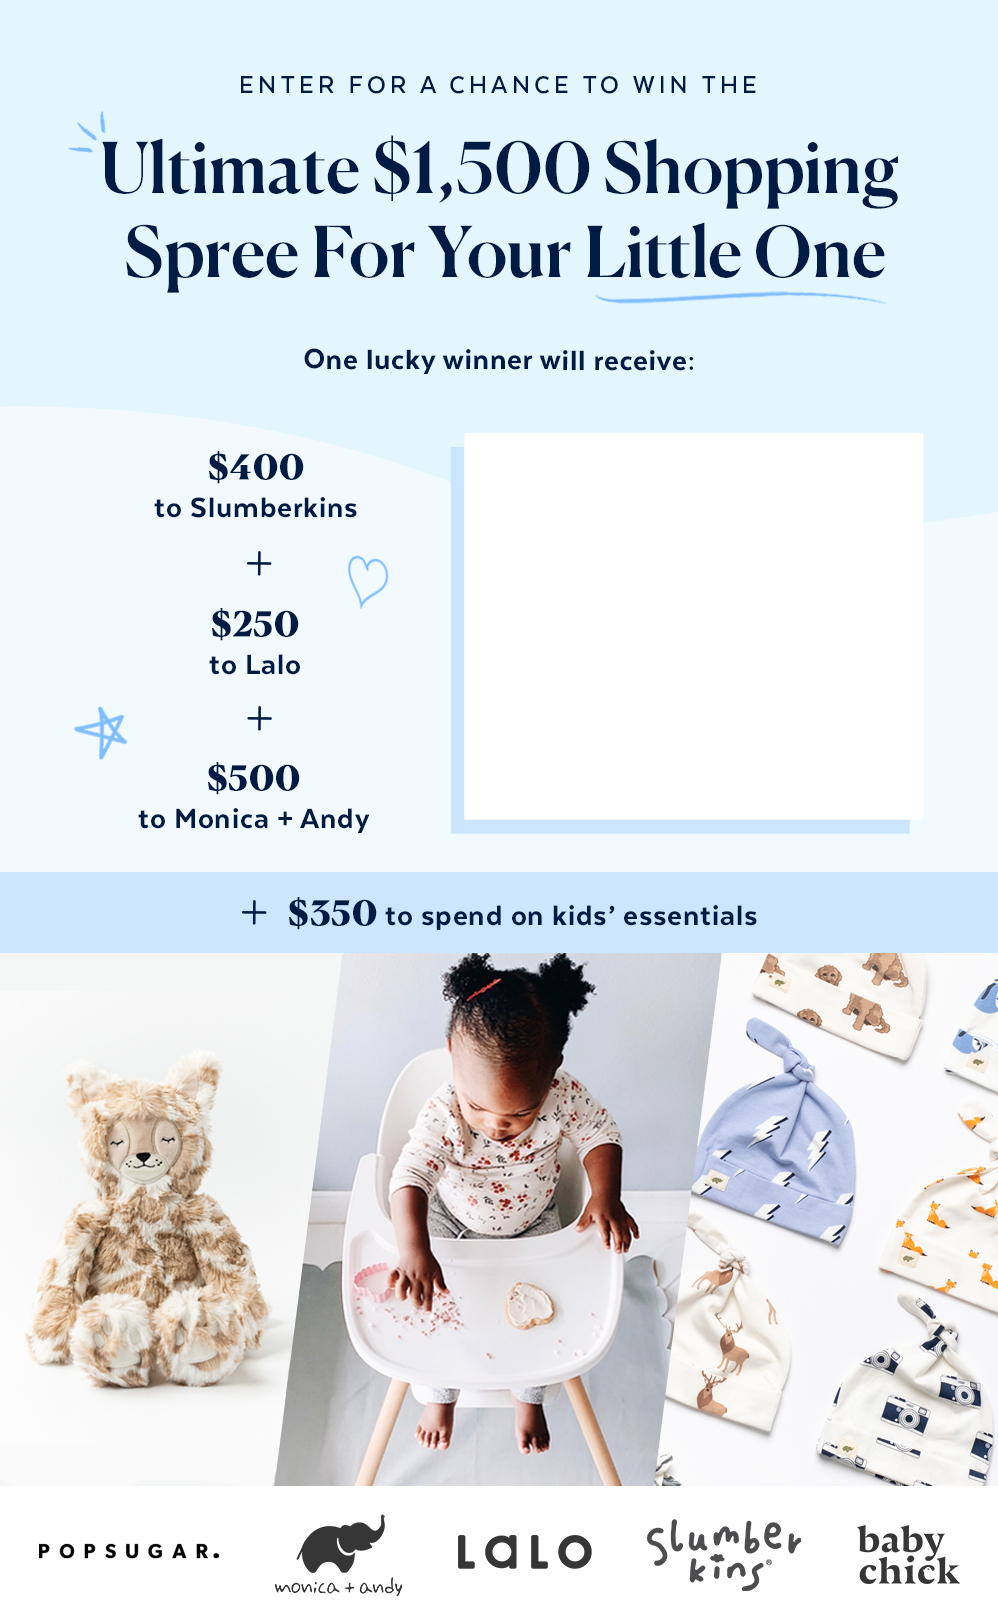 The Ultimate $1,500 Shopping Spree For Your Little One